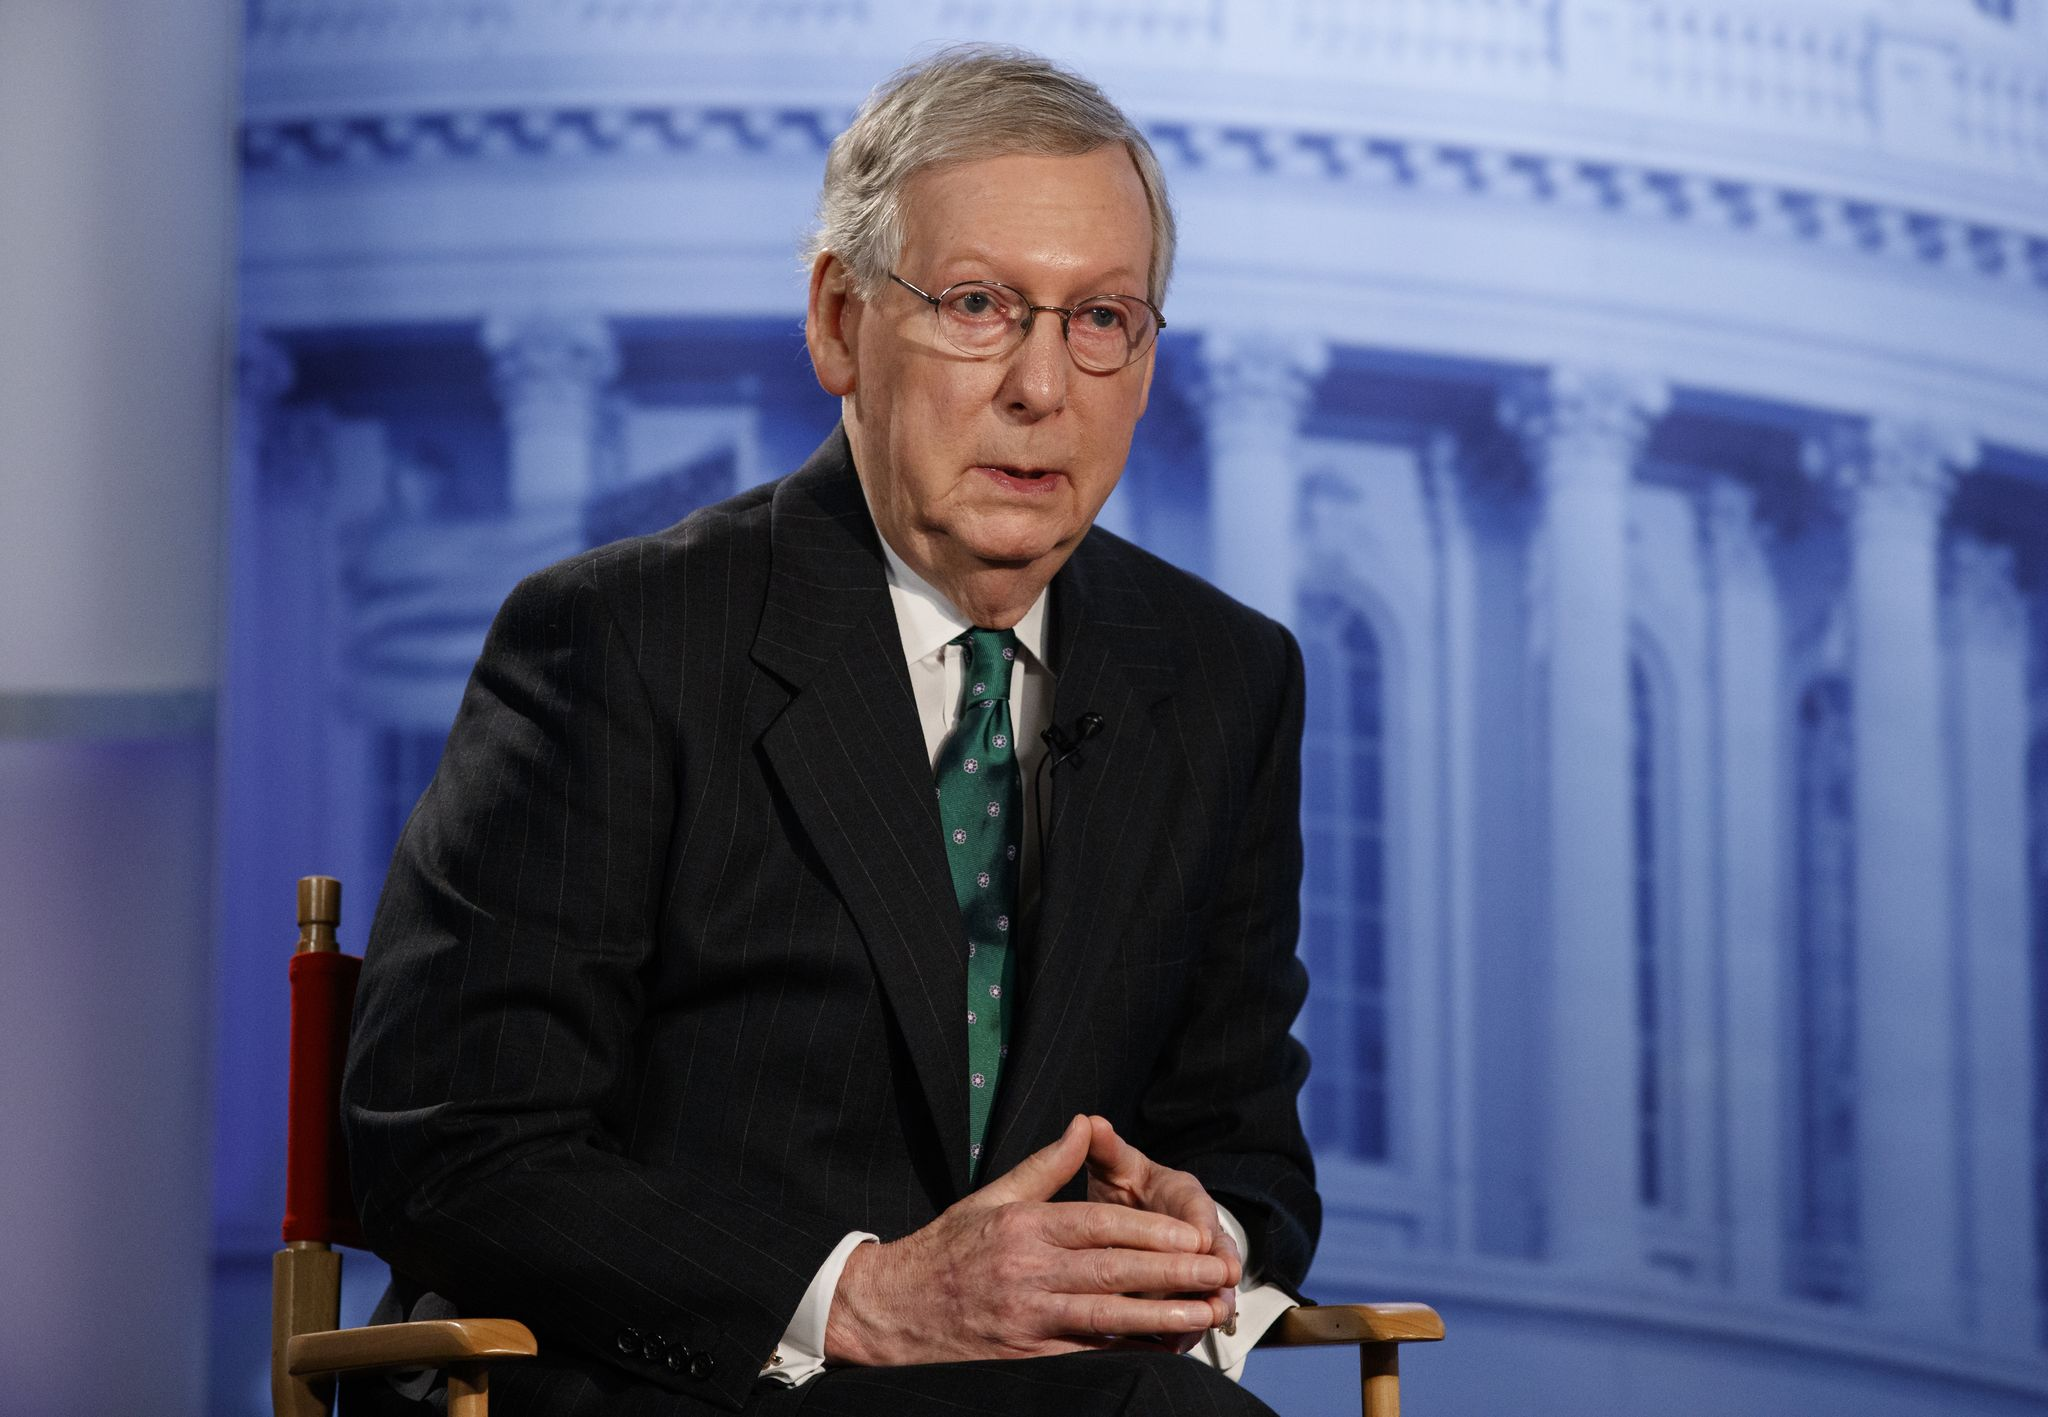 Mitch McConnell predicts 'record' turnout in election